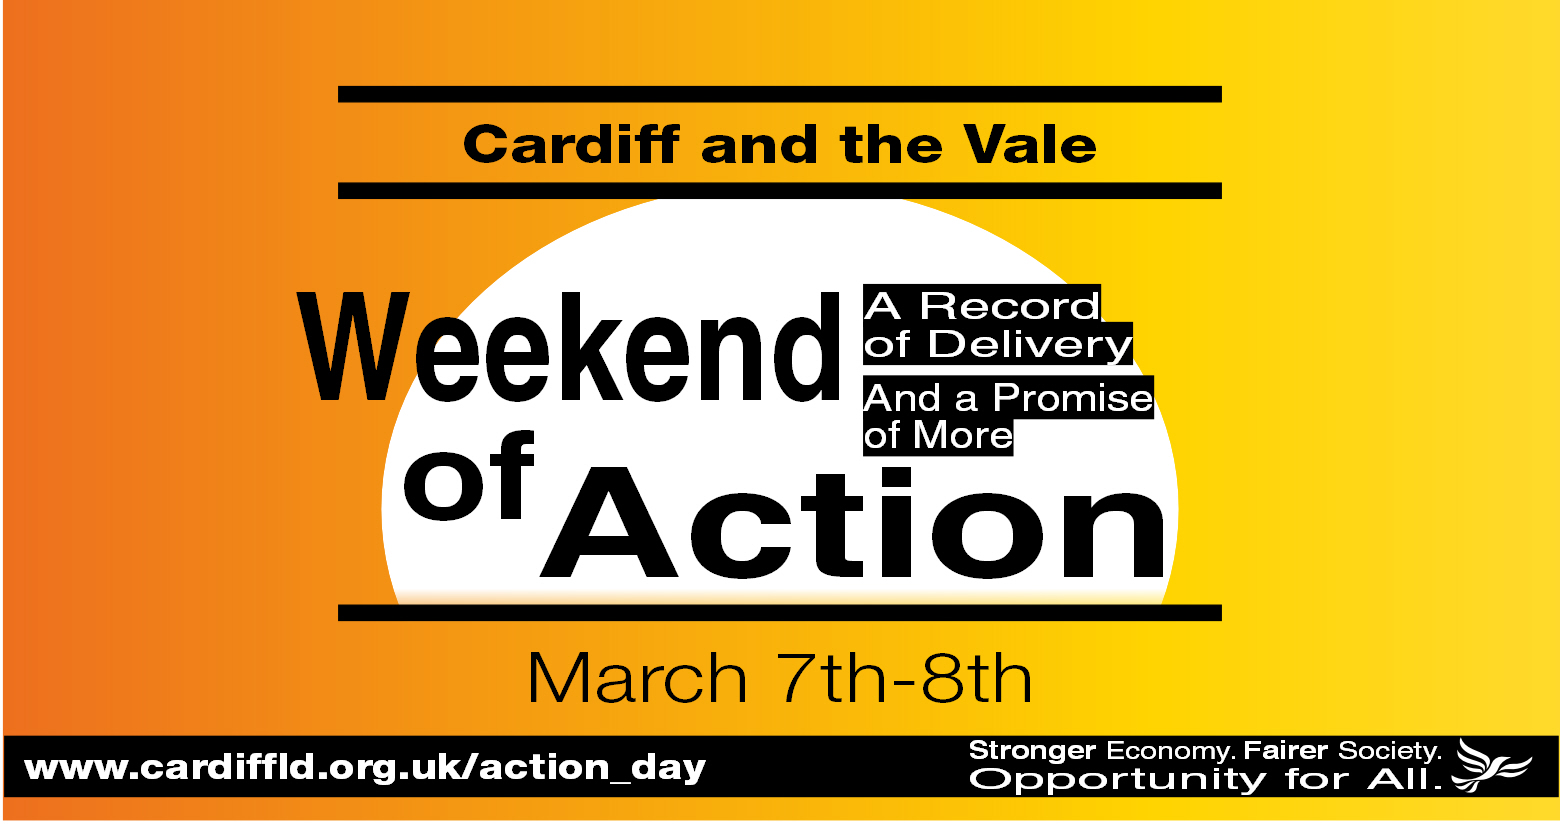 March_Action_Weekend_Infographic.jpg